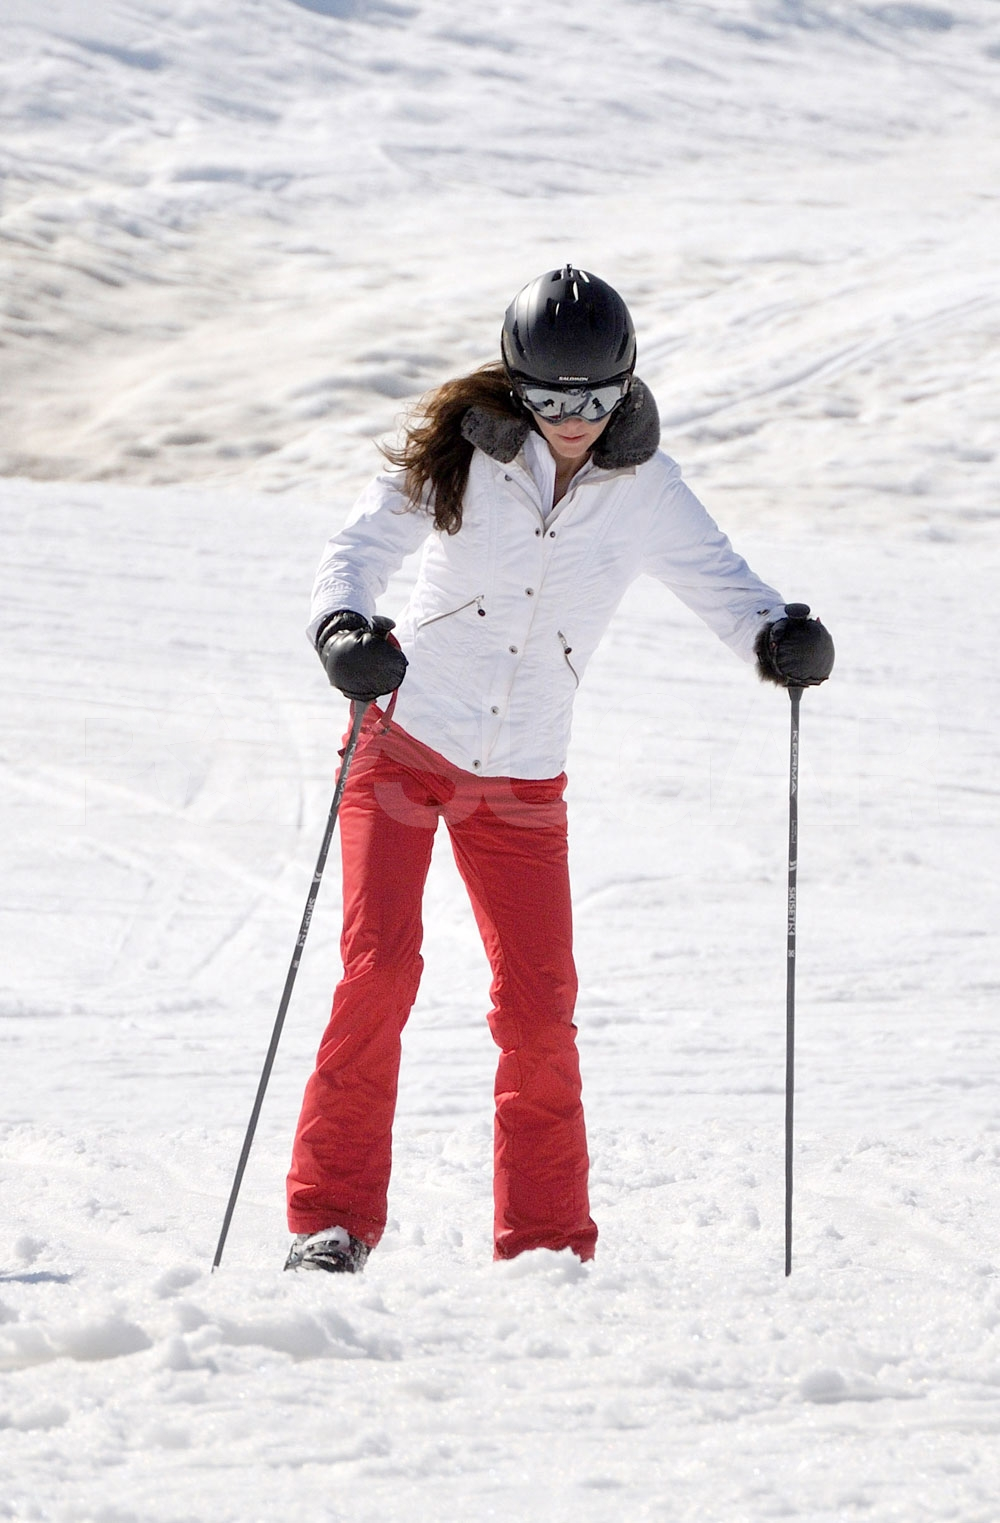 Kate middleton dug her poles into the snow on a ski for Vacation in the snow